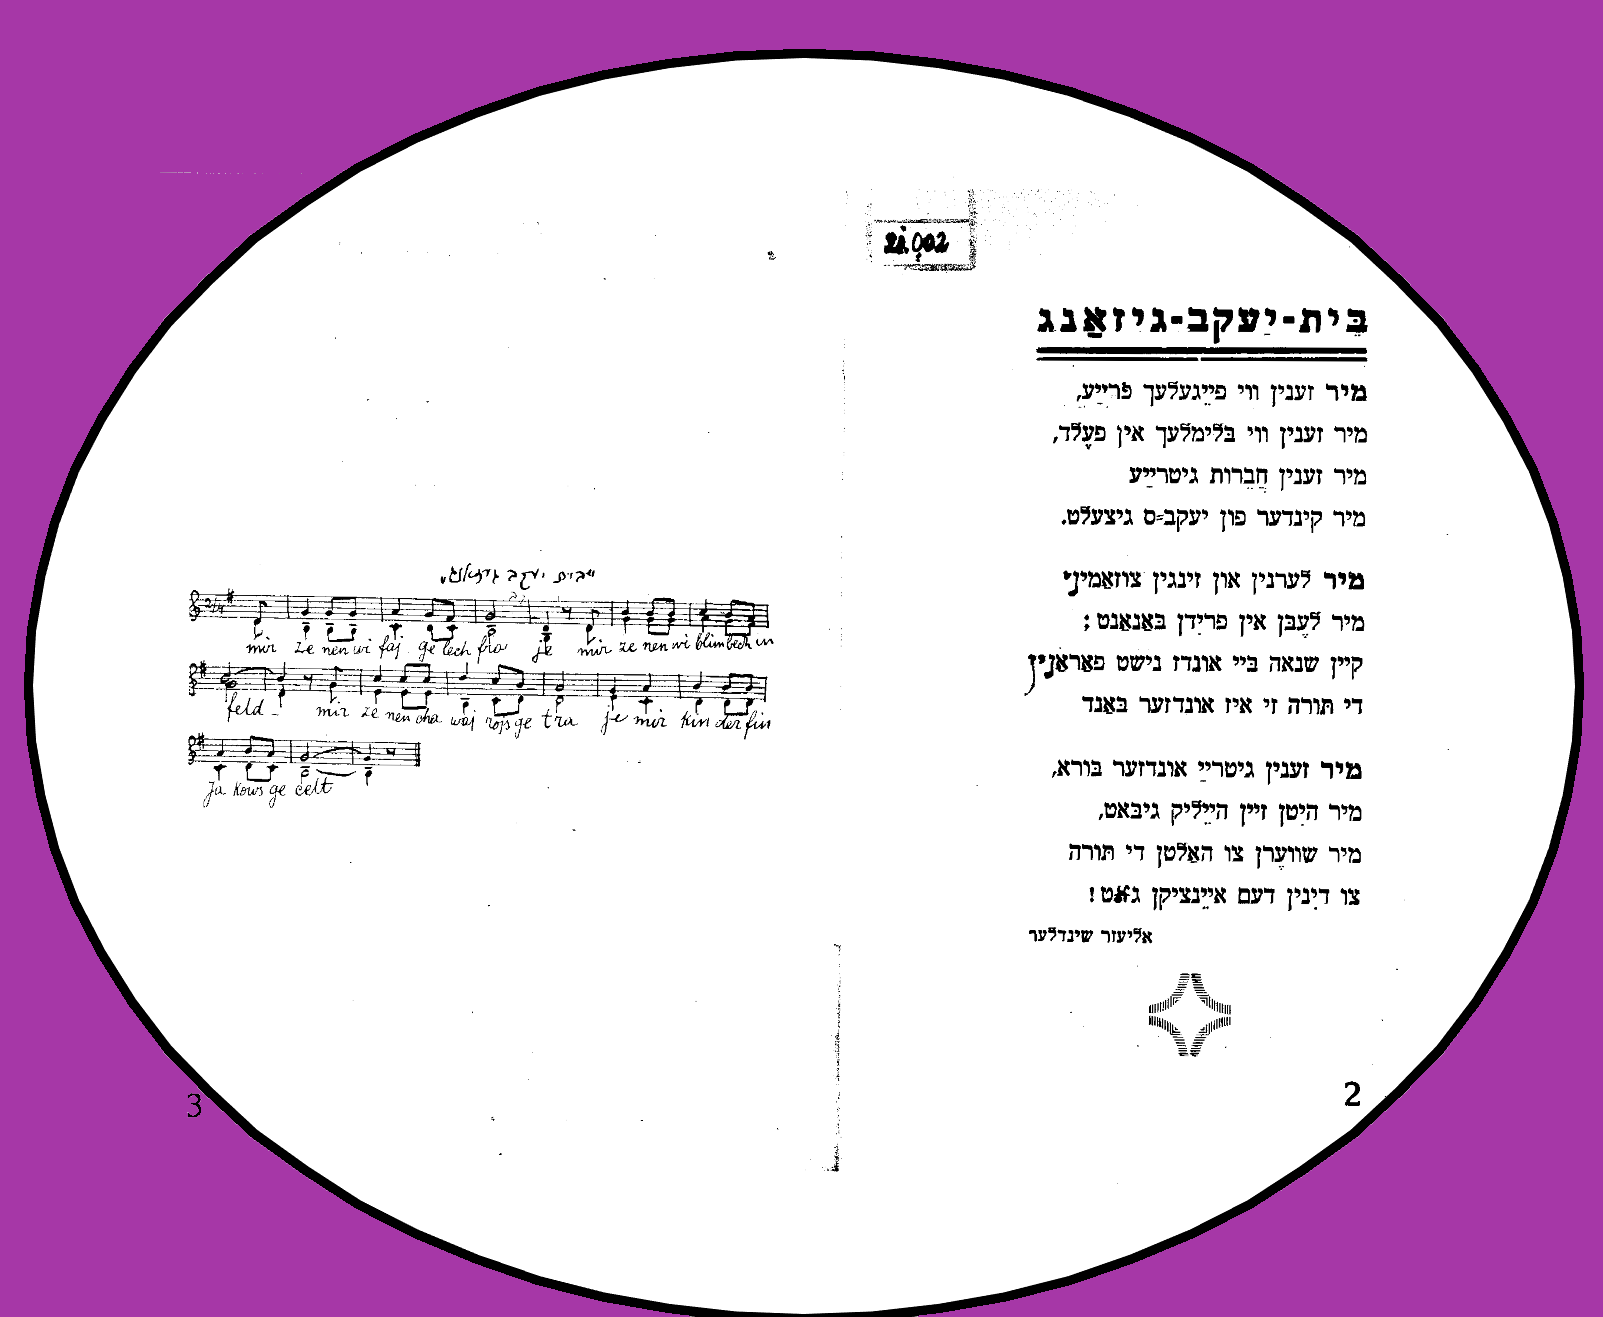 "<p><span class=""dquo"">""</span>Bais Yaakov Gezang"" was writ­ten by Eliez­er Schindler (<span class=""numbers"">1892</span>−<span class=""numbers"">1957</span>), one of the pre­em­i­nent Ortho­dox Yid­dish poets of inter­war Europe. Born in Tyczyn, Poland, he lived in the Sovi­et Union before mov­ing with his wife, Sali, to Munich, Ger­many, in the ear­ly <span class=""numbers"">1920</span>s. In <span class=""numbers"">1938</span> he emi­grat­ed to Amer­i­ca and became a&nbsp;farmer near Lake­wood, New Jer­sey. Great­ly influ­enced by Nathan Birn­baum, he was an active sup­port­er of and writer for the Olim [the <span class=""push-double""></span>​<span class=""pull-double"">""</span>Ascen­ders""], the move­ment Birn­baum found­ed to revive Ortho­doxy through com­mu­ni­ties of young Jews liv­ing <span class=""push-double""></span>​<span class=""pull-double"">""</span>sim­ple,"" com­mu­nal lives in rur­al and agri­cul­tur­al set­tings, devot­ed to tra­di­tion­al Jew­ish learn­ing, lan­guage, art, music, and mys­ti­cal piety and apart from the <span class=""push-double""></span>​<span class=""pull-double"">""</span>pagan"" and mate­ri­al­is­tic ele­ments of mod­ern urban life. Schindler's poet­ry and essays, full of reli­gious yearn­ing, were par­tic­u­lar­ly pop­u­lar in the Bais Yaakov move­ment. This song appears in the Bais Yaakov song­book, <i>Undz­er Gyzang: lid­er far bays-yakev shuln, basye far­bandn, un bnos agu­das yis­roel orga­ni­zat­siyes</i> (Lodz, <span class=""numbers"">1931</span>), <span class=""numbers"">2</span> – <span class=""numbers"">3</span>. Schindler worked with at least four com­posers, but this tune was prob­a­bly set to music by Joshua Weiss­er. <span class=""caps"">NS</span>: Note: I&nbsp;am using Bais Yaakov's own idio­syn­crat­ic translit­er­a­tion (on the Pol­ish side of the title page) for the title of the&nbsp;book.</p>"